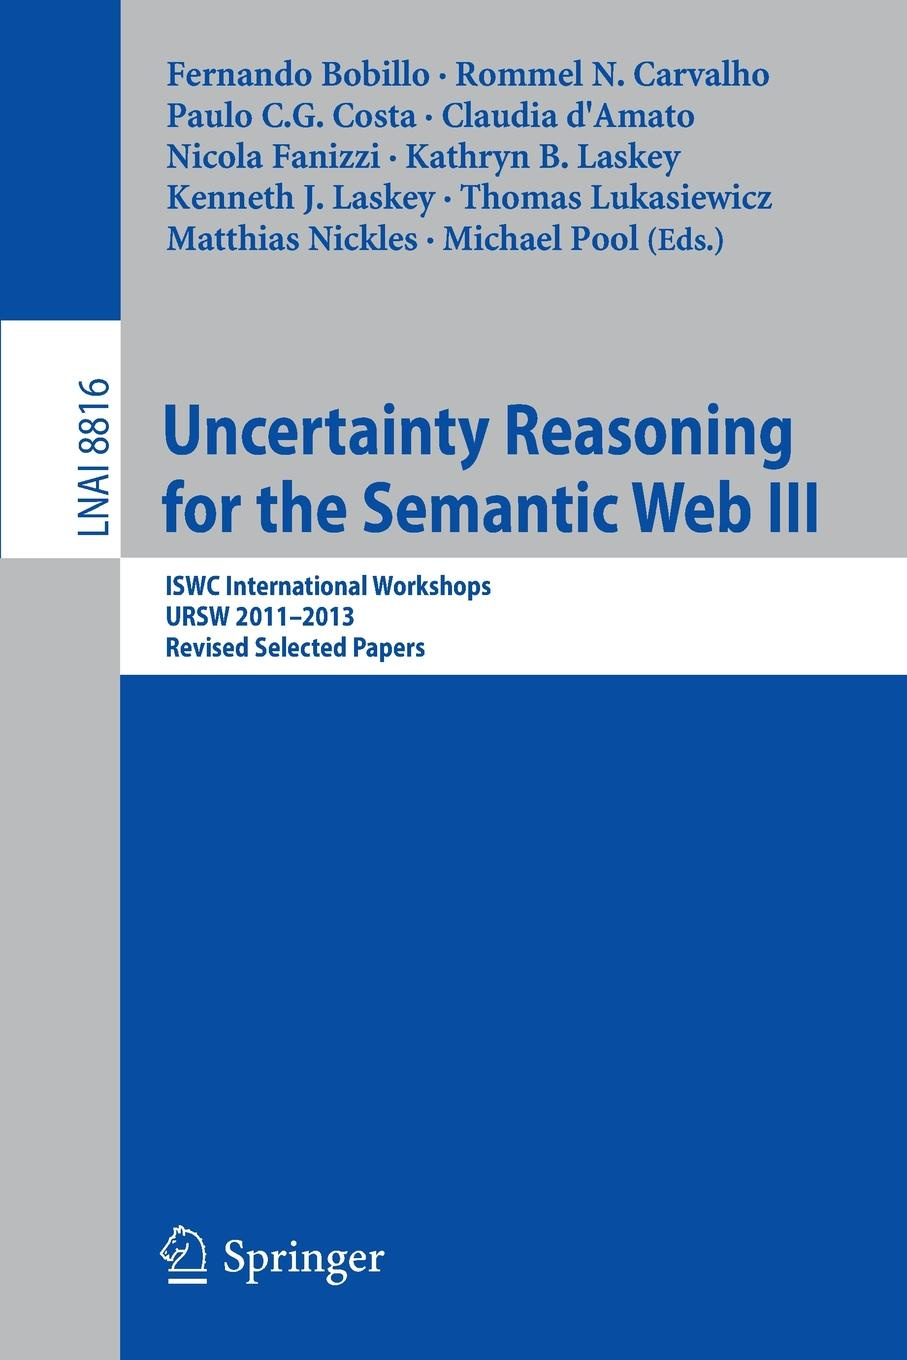 Uncertainty Reasoning for the Semantic Web III ISWC International Workshops URSW 2011-2013 Revised Selected Papers